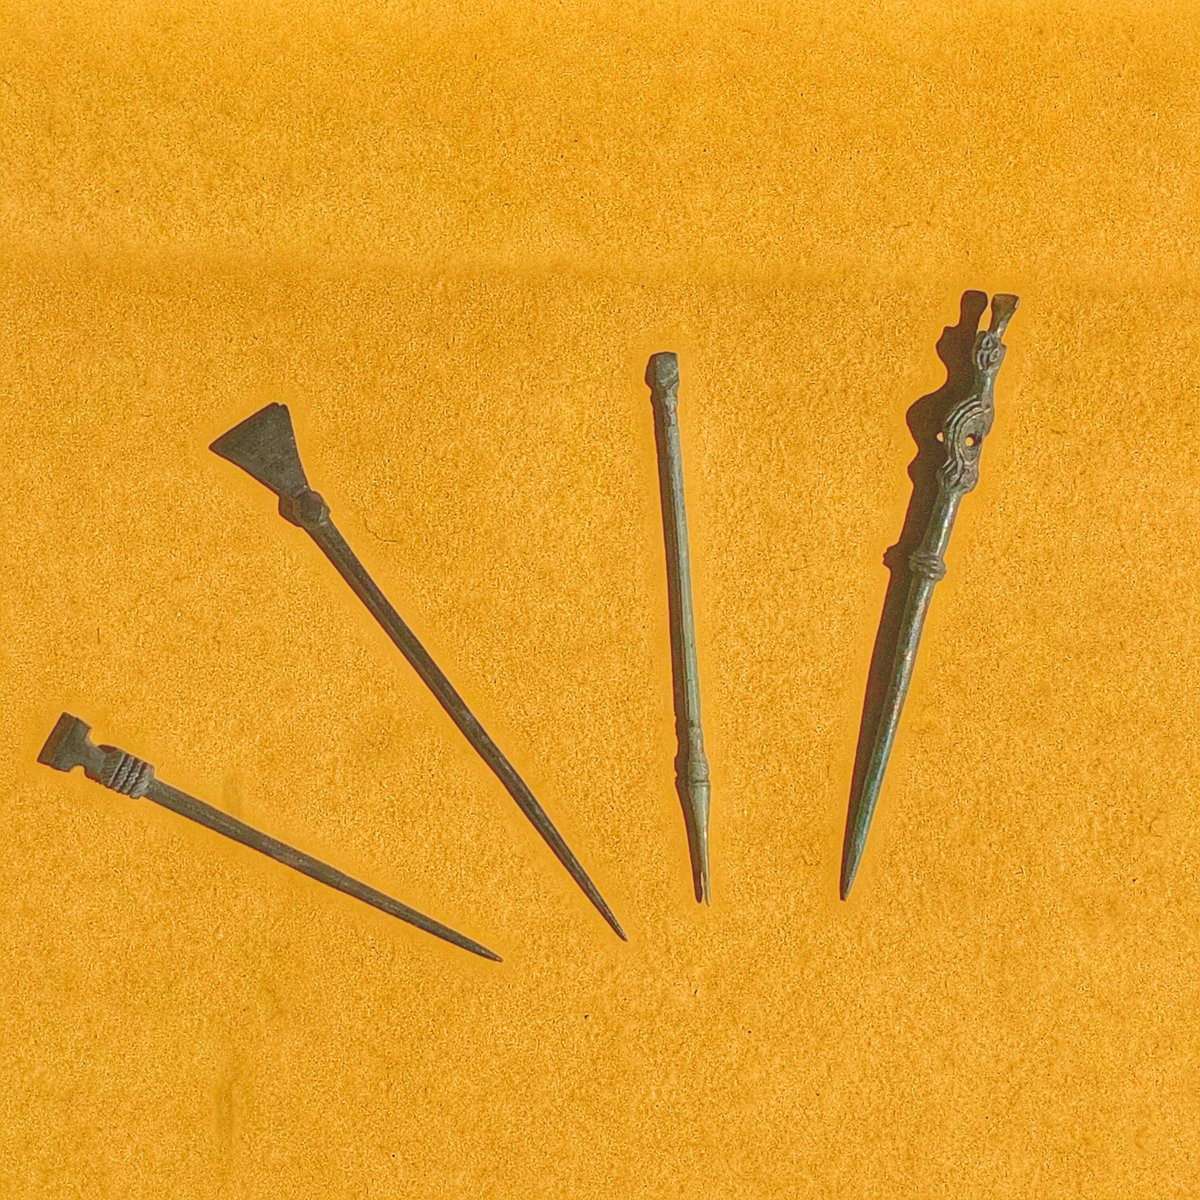 Stylus (writing pens), Cologne / Neuss (Germany), medieval, copper alloy, LVR-LMB = LandschaftsVerband Rheinland - LandesMuseum Bonn.  #AHMBrussels #Crossroads https://t.co/0H58ikZGtR